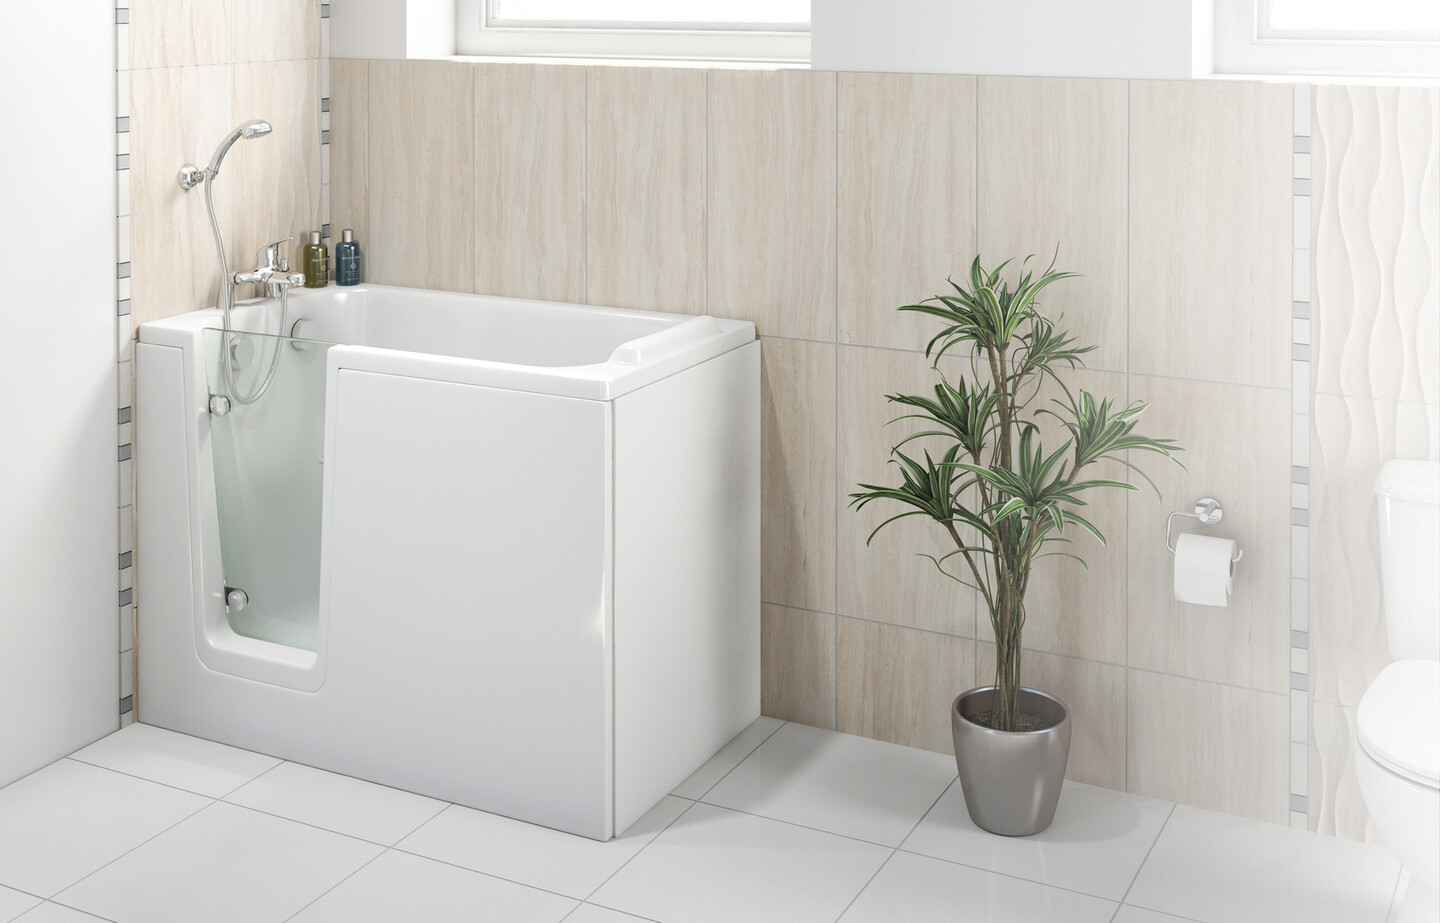 A photo of our 'Comfort' bath